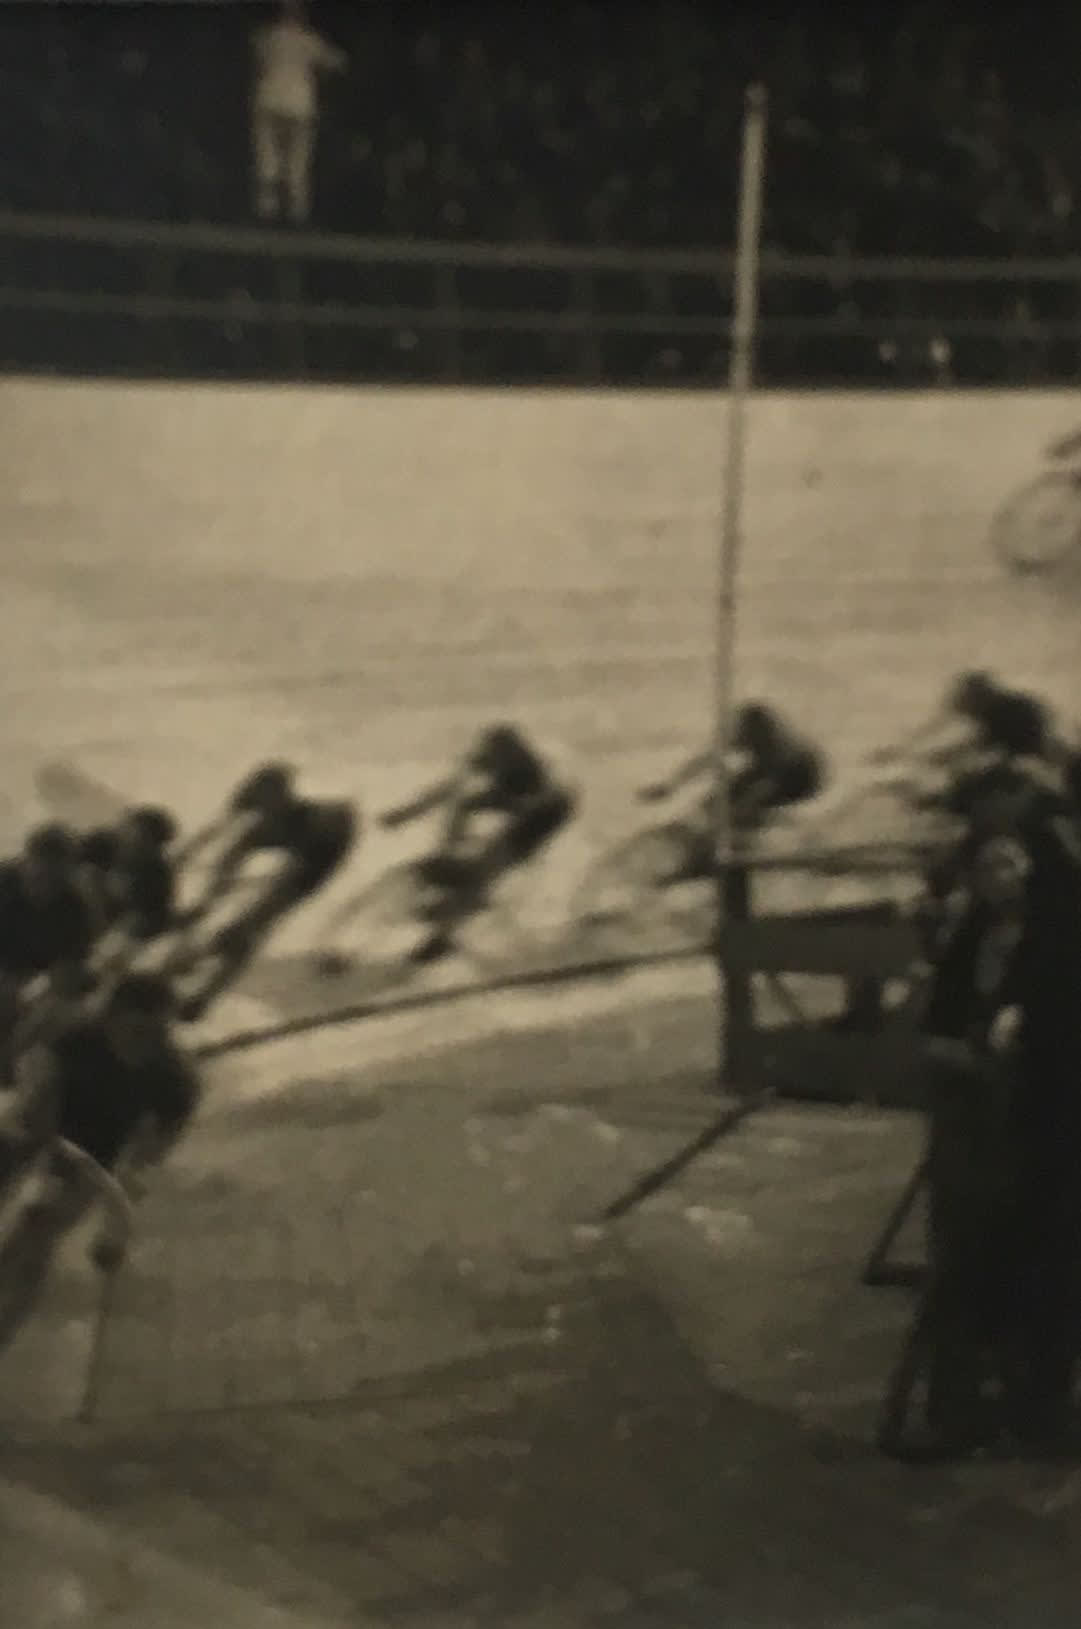 """Fred Zinnemann 1907-1997Bicycle Race, Madison Square Garden, 1932 """"Estate of Fred Zinnemann"""" & signed by his son Tim Zinnemann in pencil on verso Vintage gelatin silver print 1 3/8 x 1 inches"""